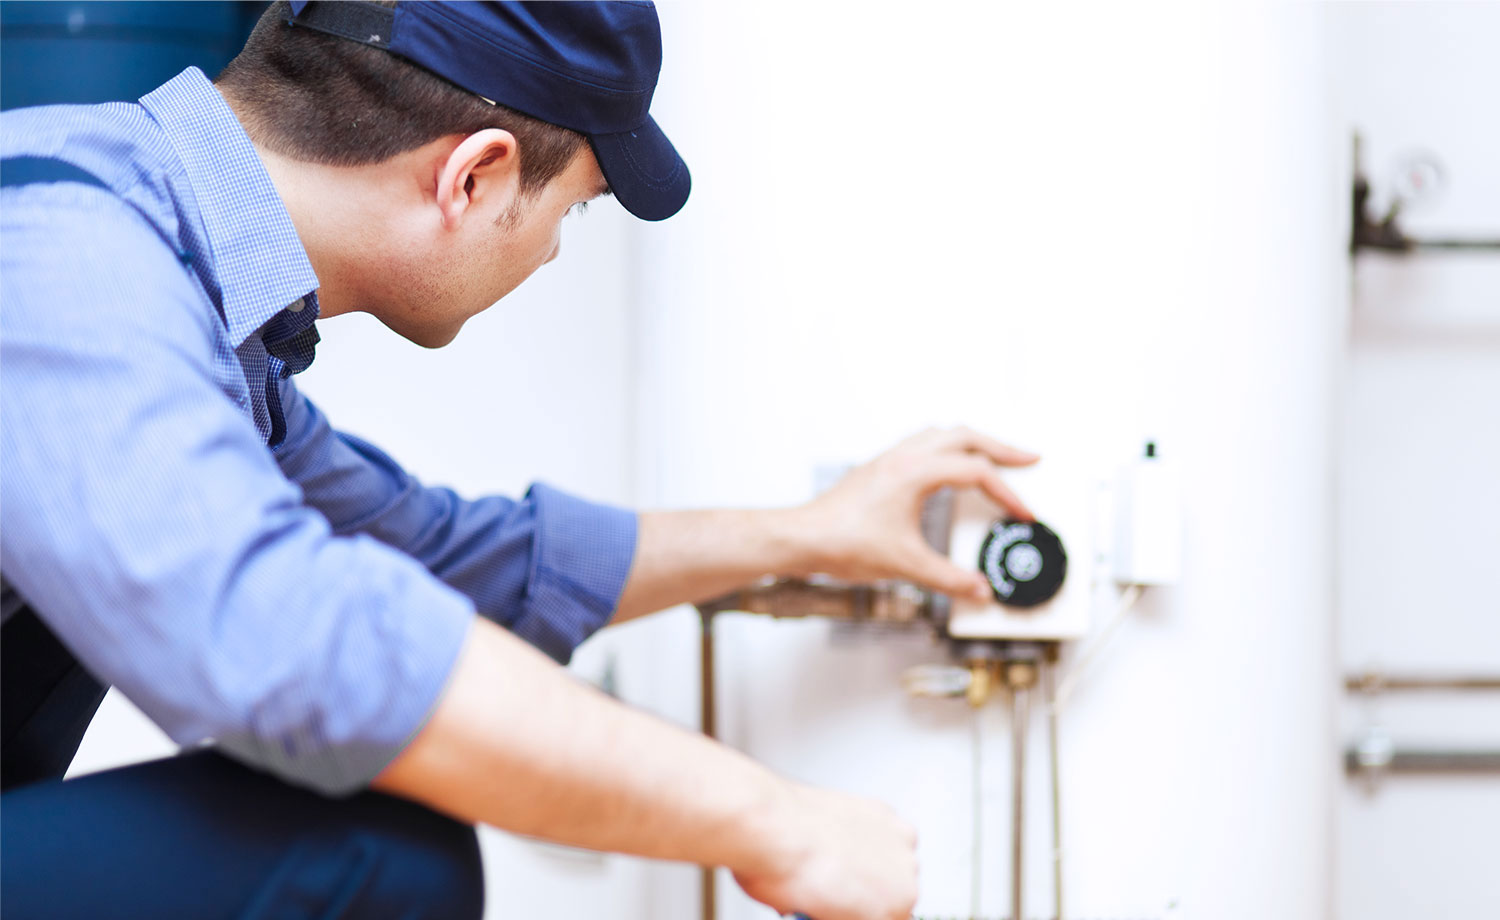 Inspector looking at water heater thermostat.